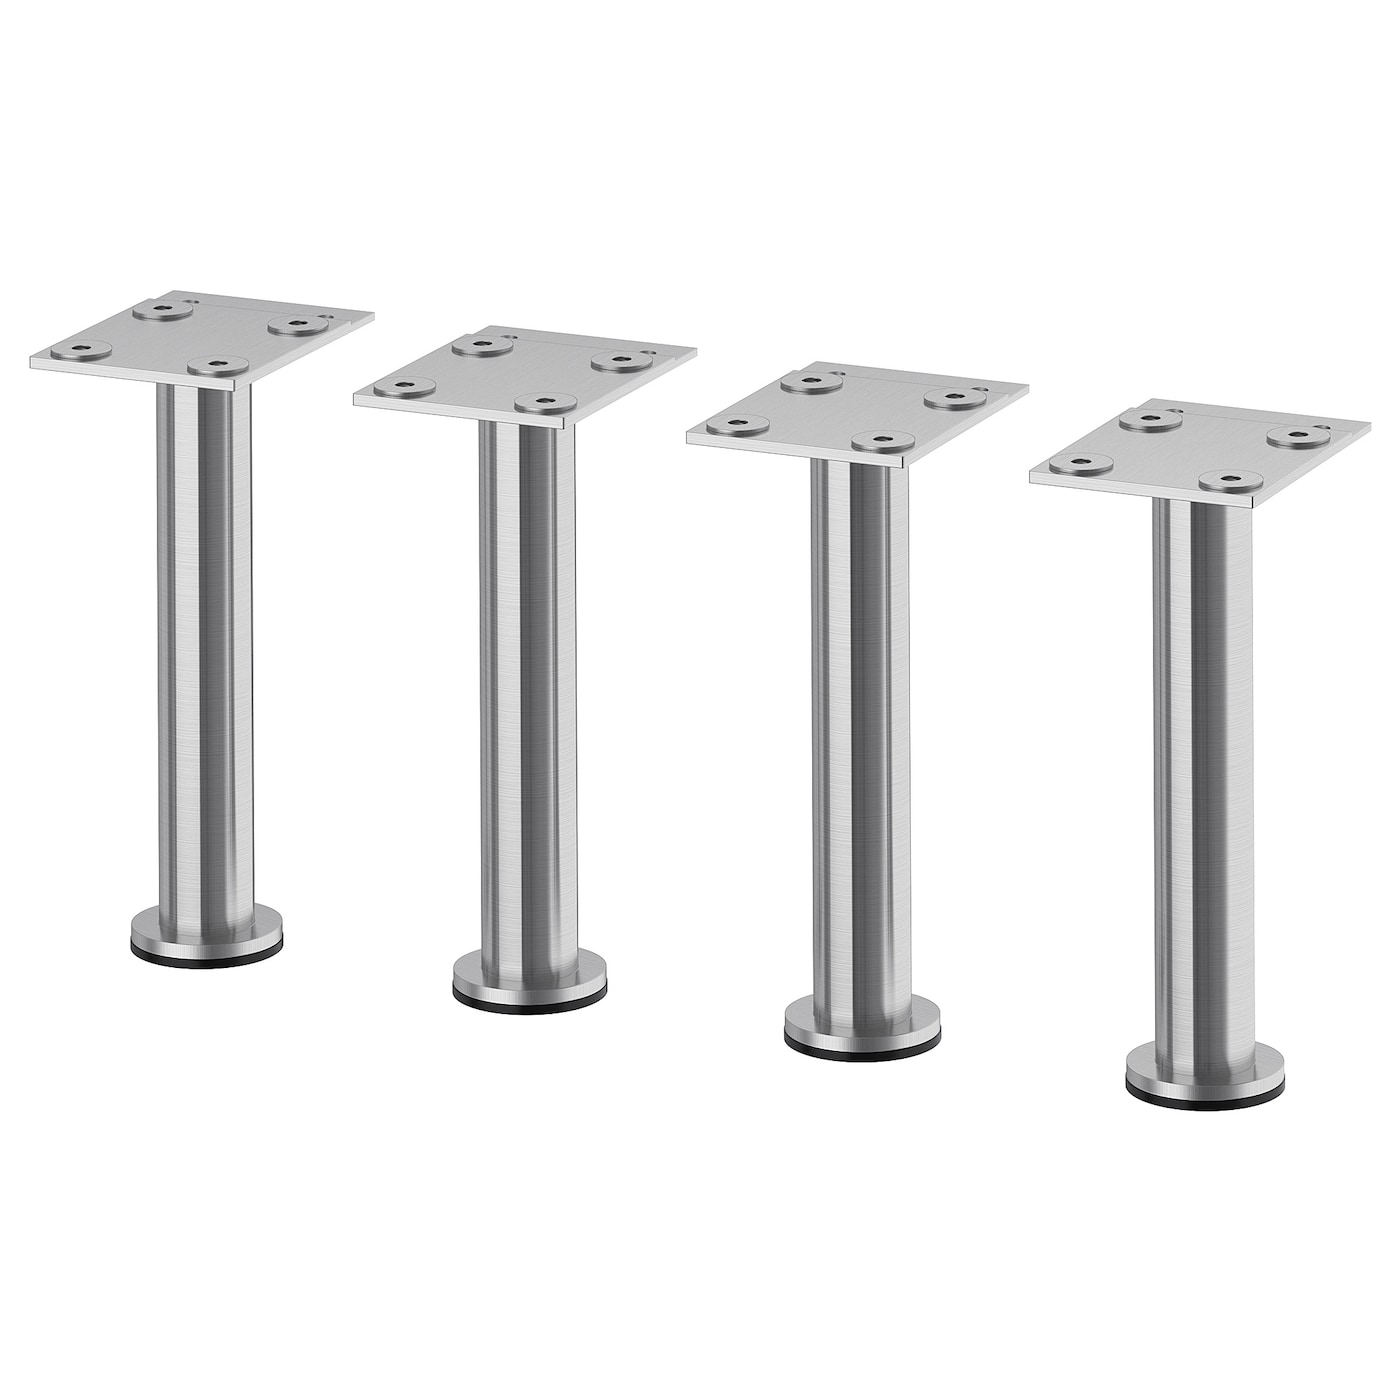 IKEA CAPITA leg Stands steady on uneven floors because they are adjustable between 16-17 cm.